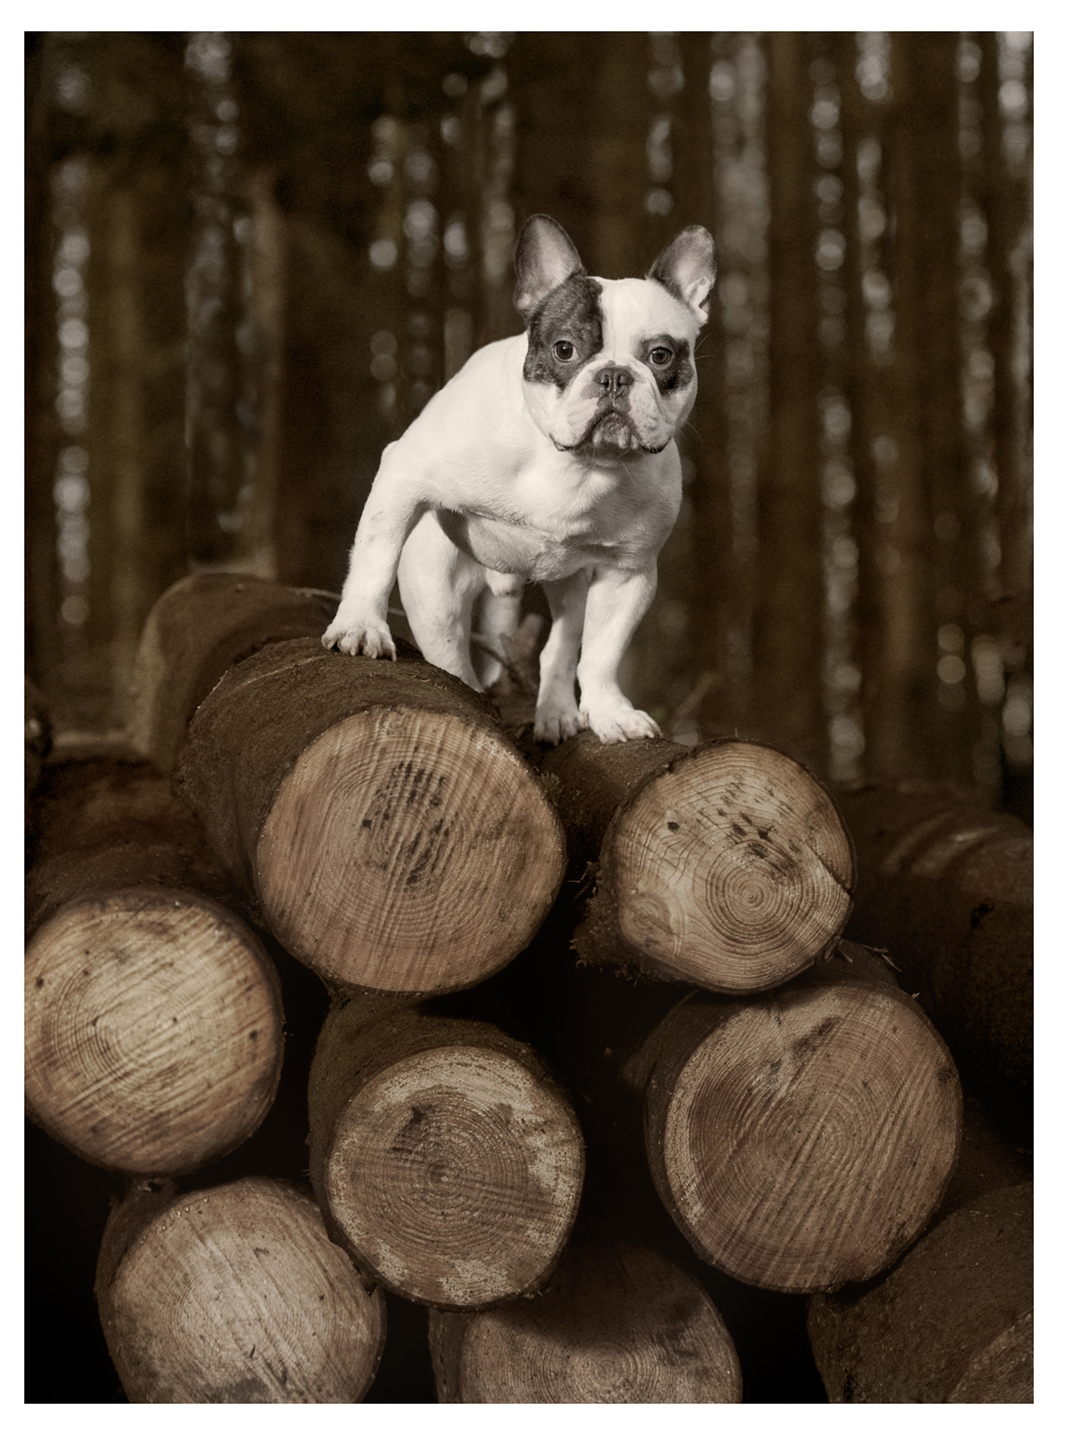 Dog on a pile of logs